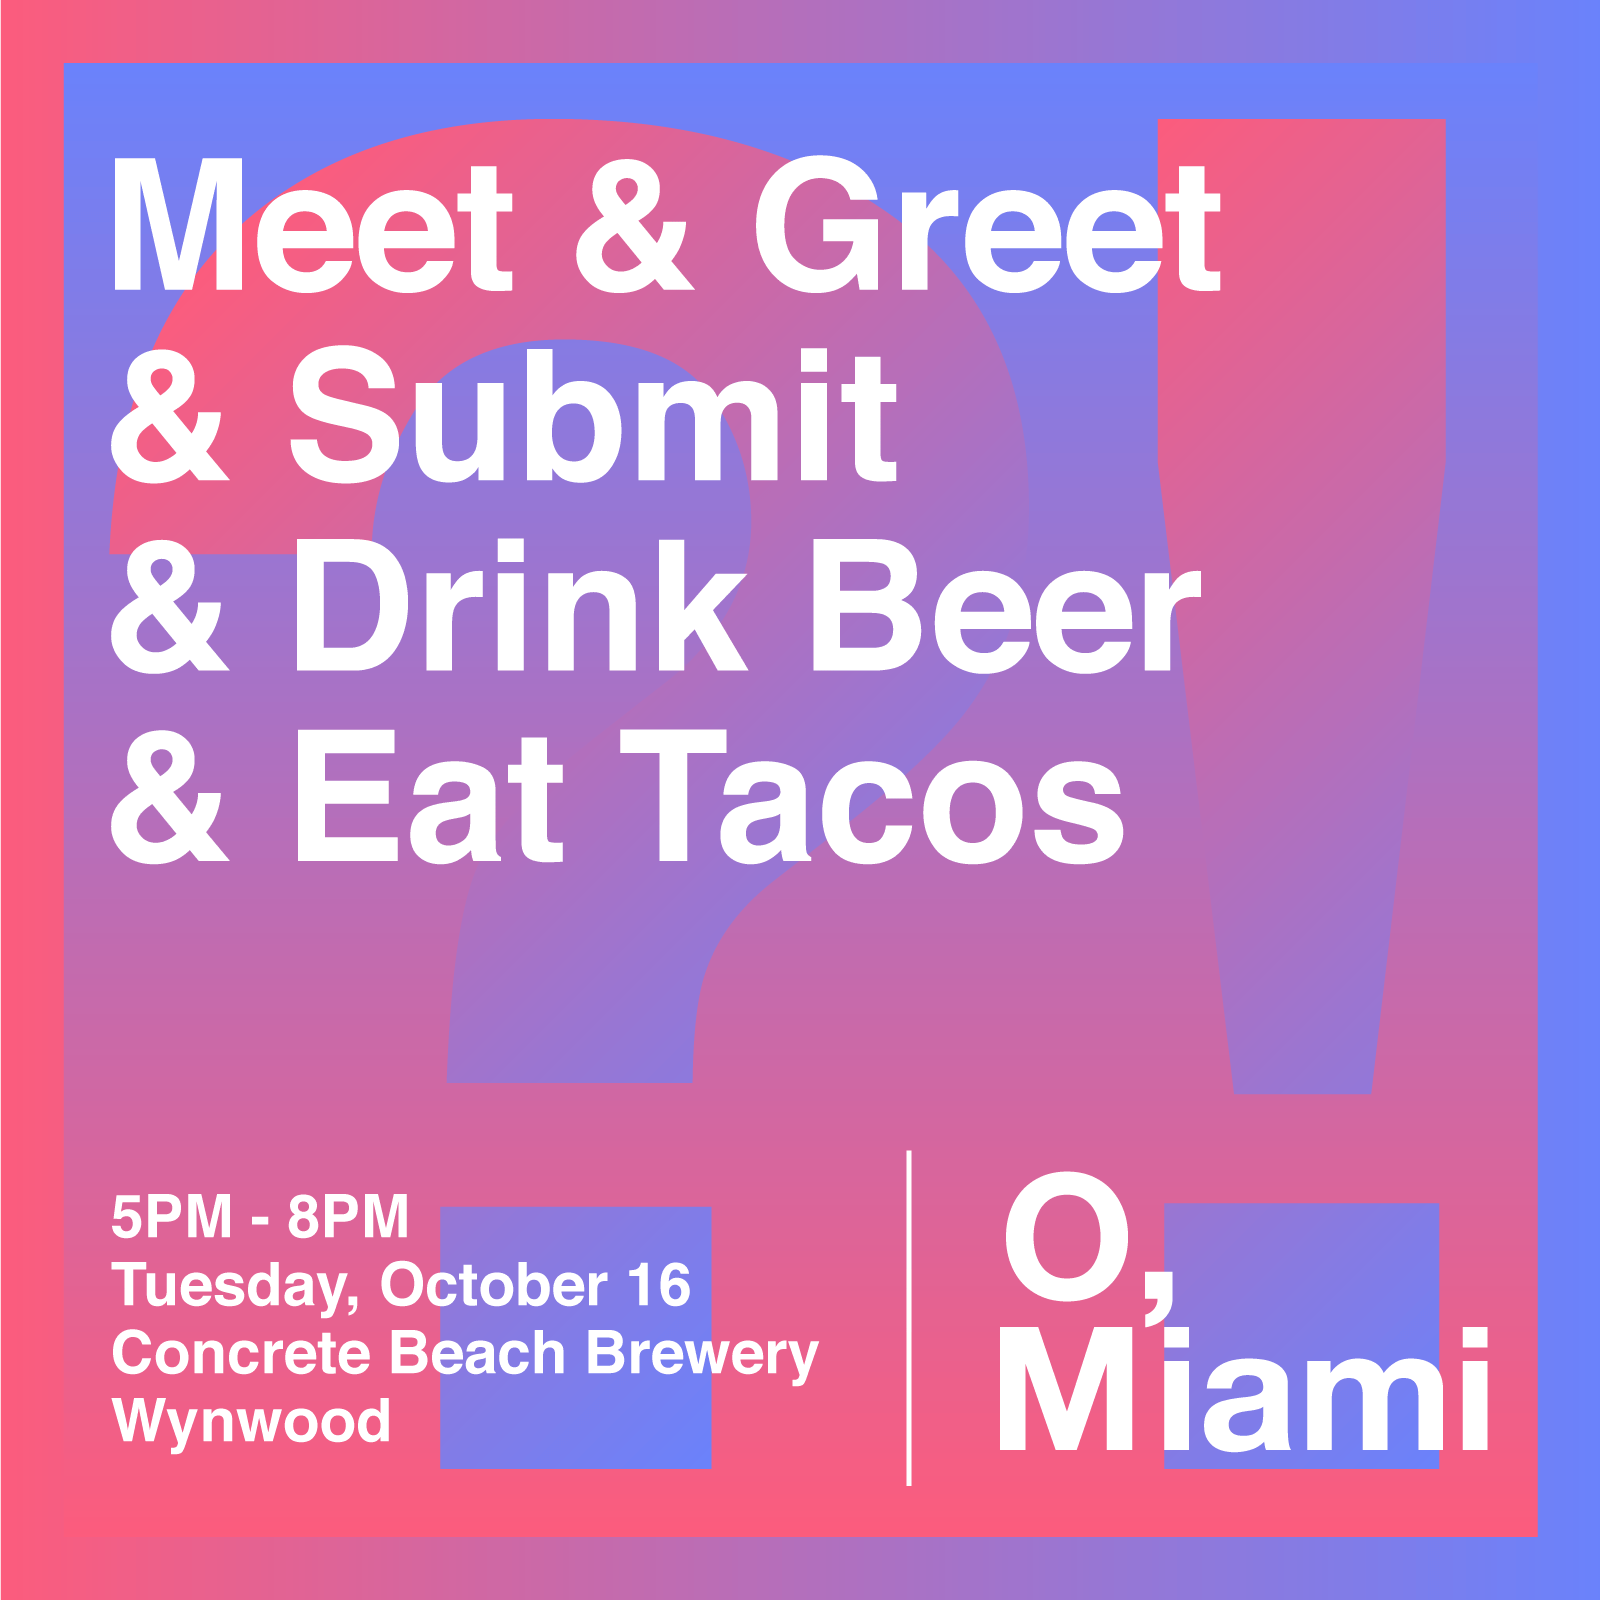 O Miami Meet Greet Submit Eat Tacos O Miami